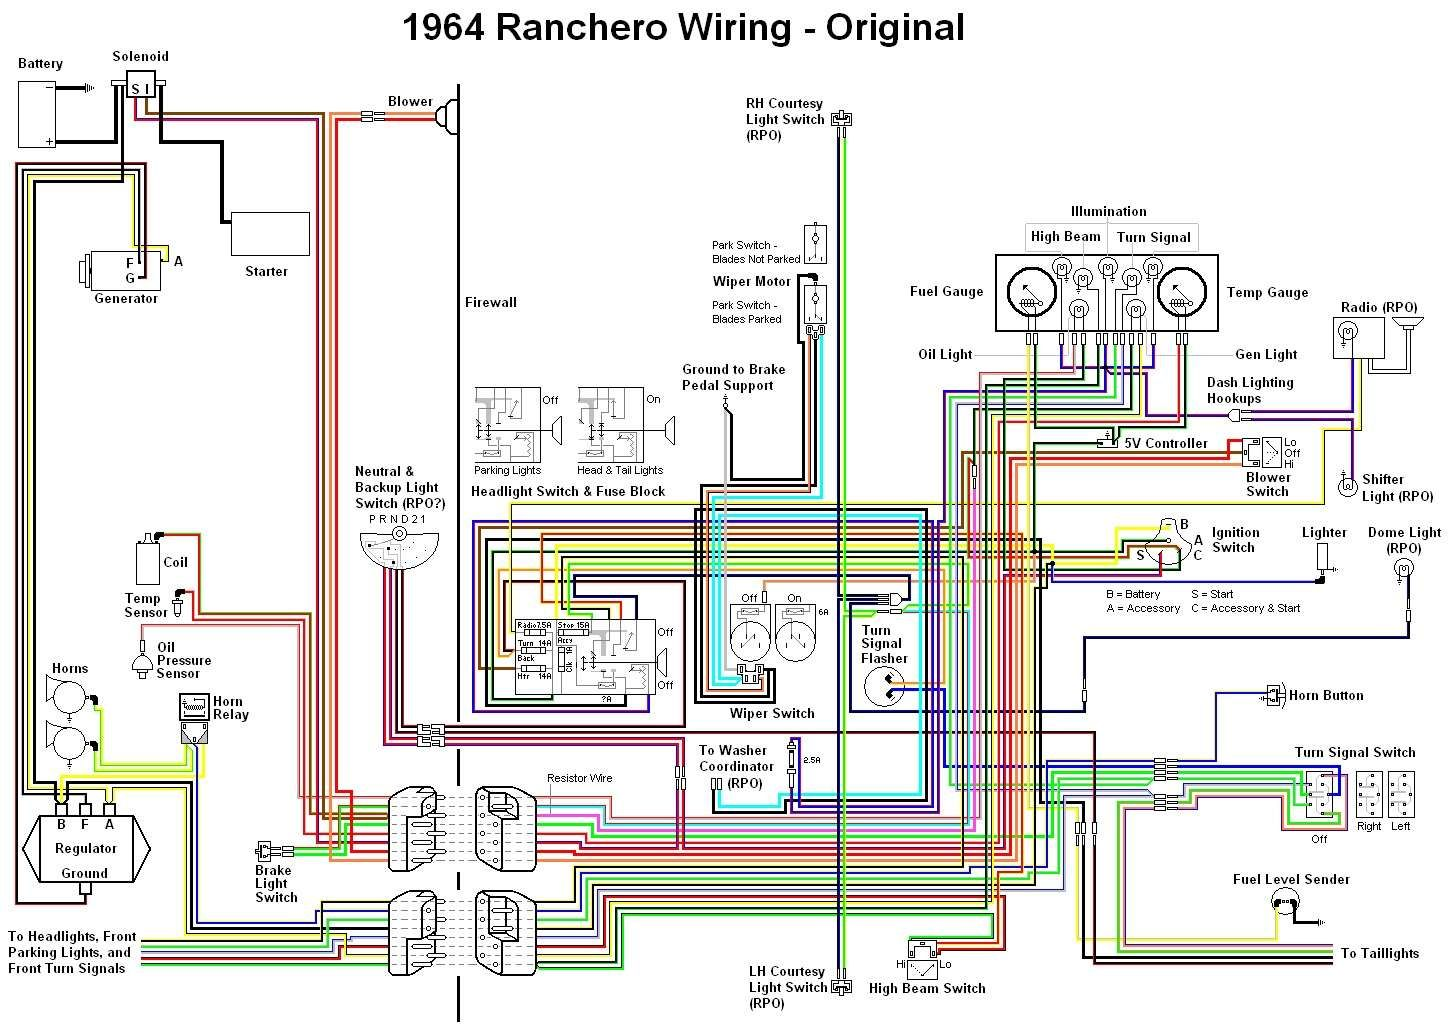 [FPER_4992]  Wiring Diagram Cars Trucks. Wiring Diagram Cars Trucks. Truck Horn Wiring  Wiring Diagrams | Trailer wiring diagram, Wire, Ford falcon | Delco Radio Wiring Diagram 1964 |  | Pinterest